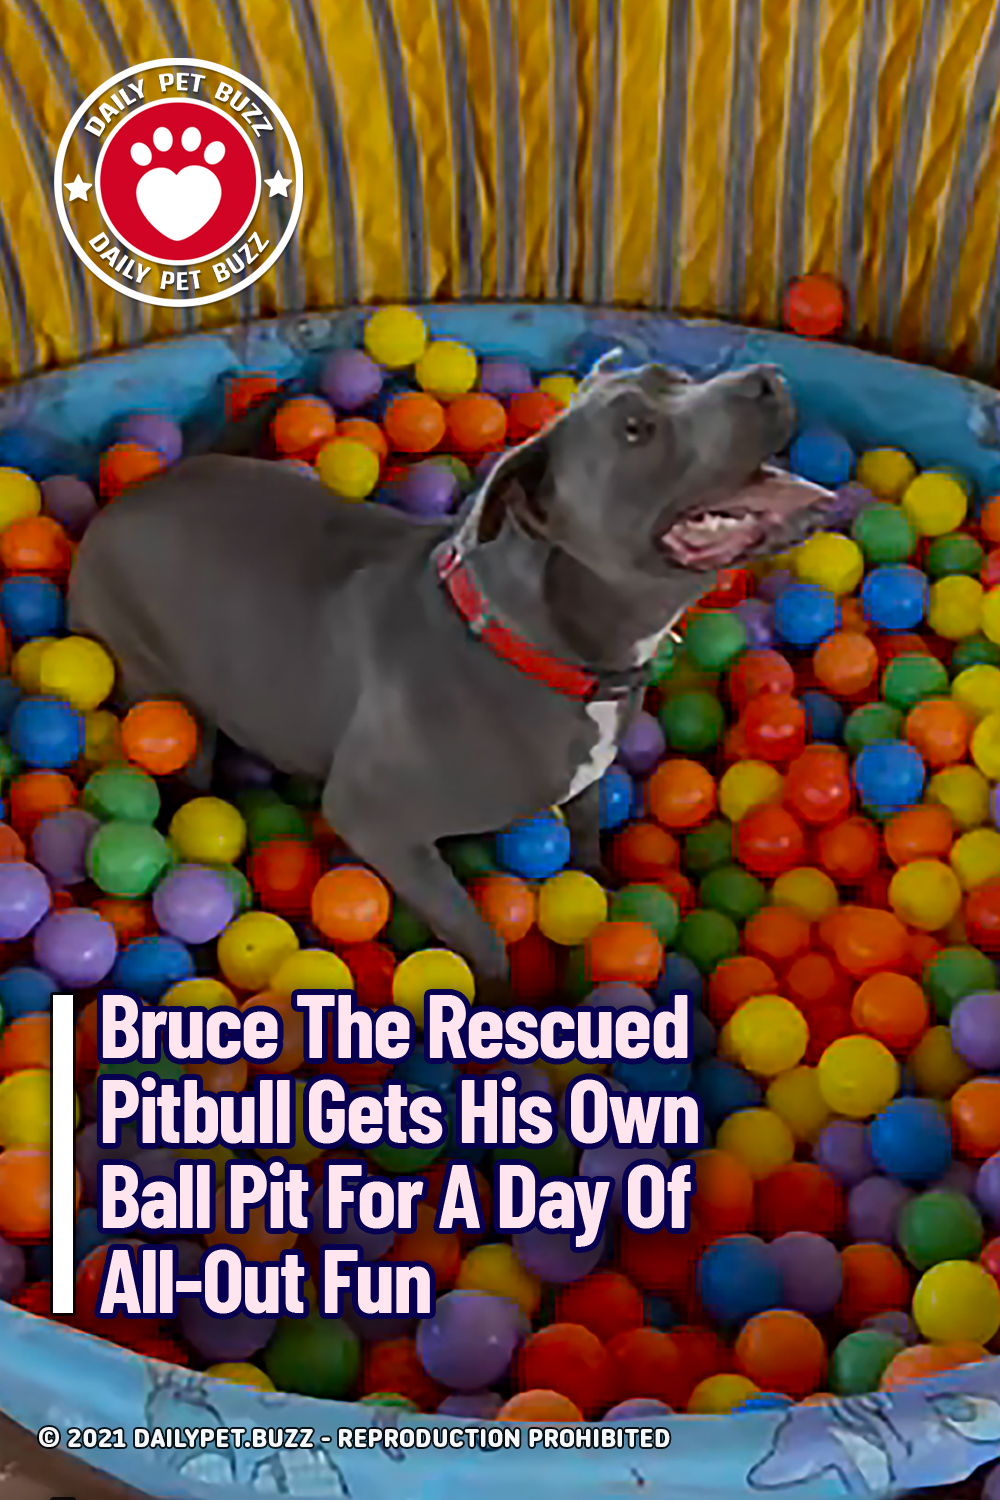 Bruce The Rescued Pitbull Gets His Own Ball Pit For A Day Of All-Out Fun